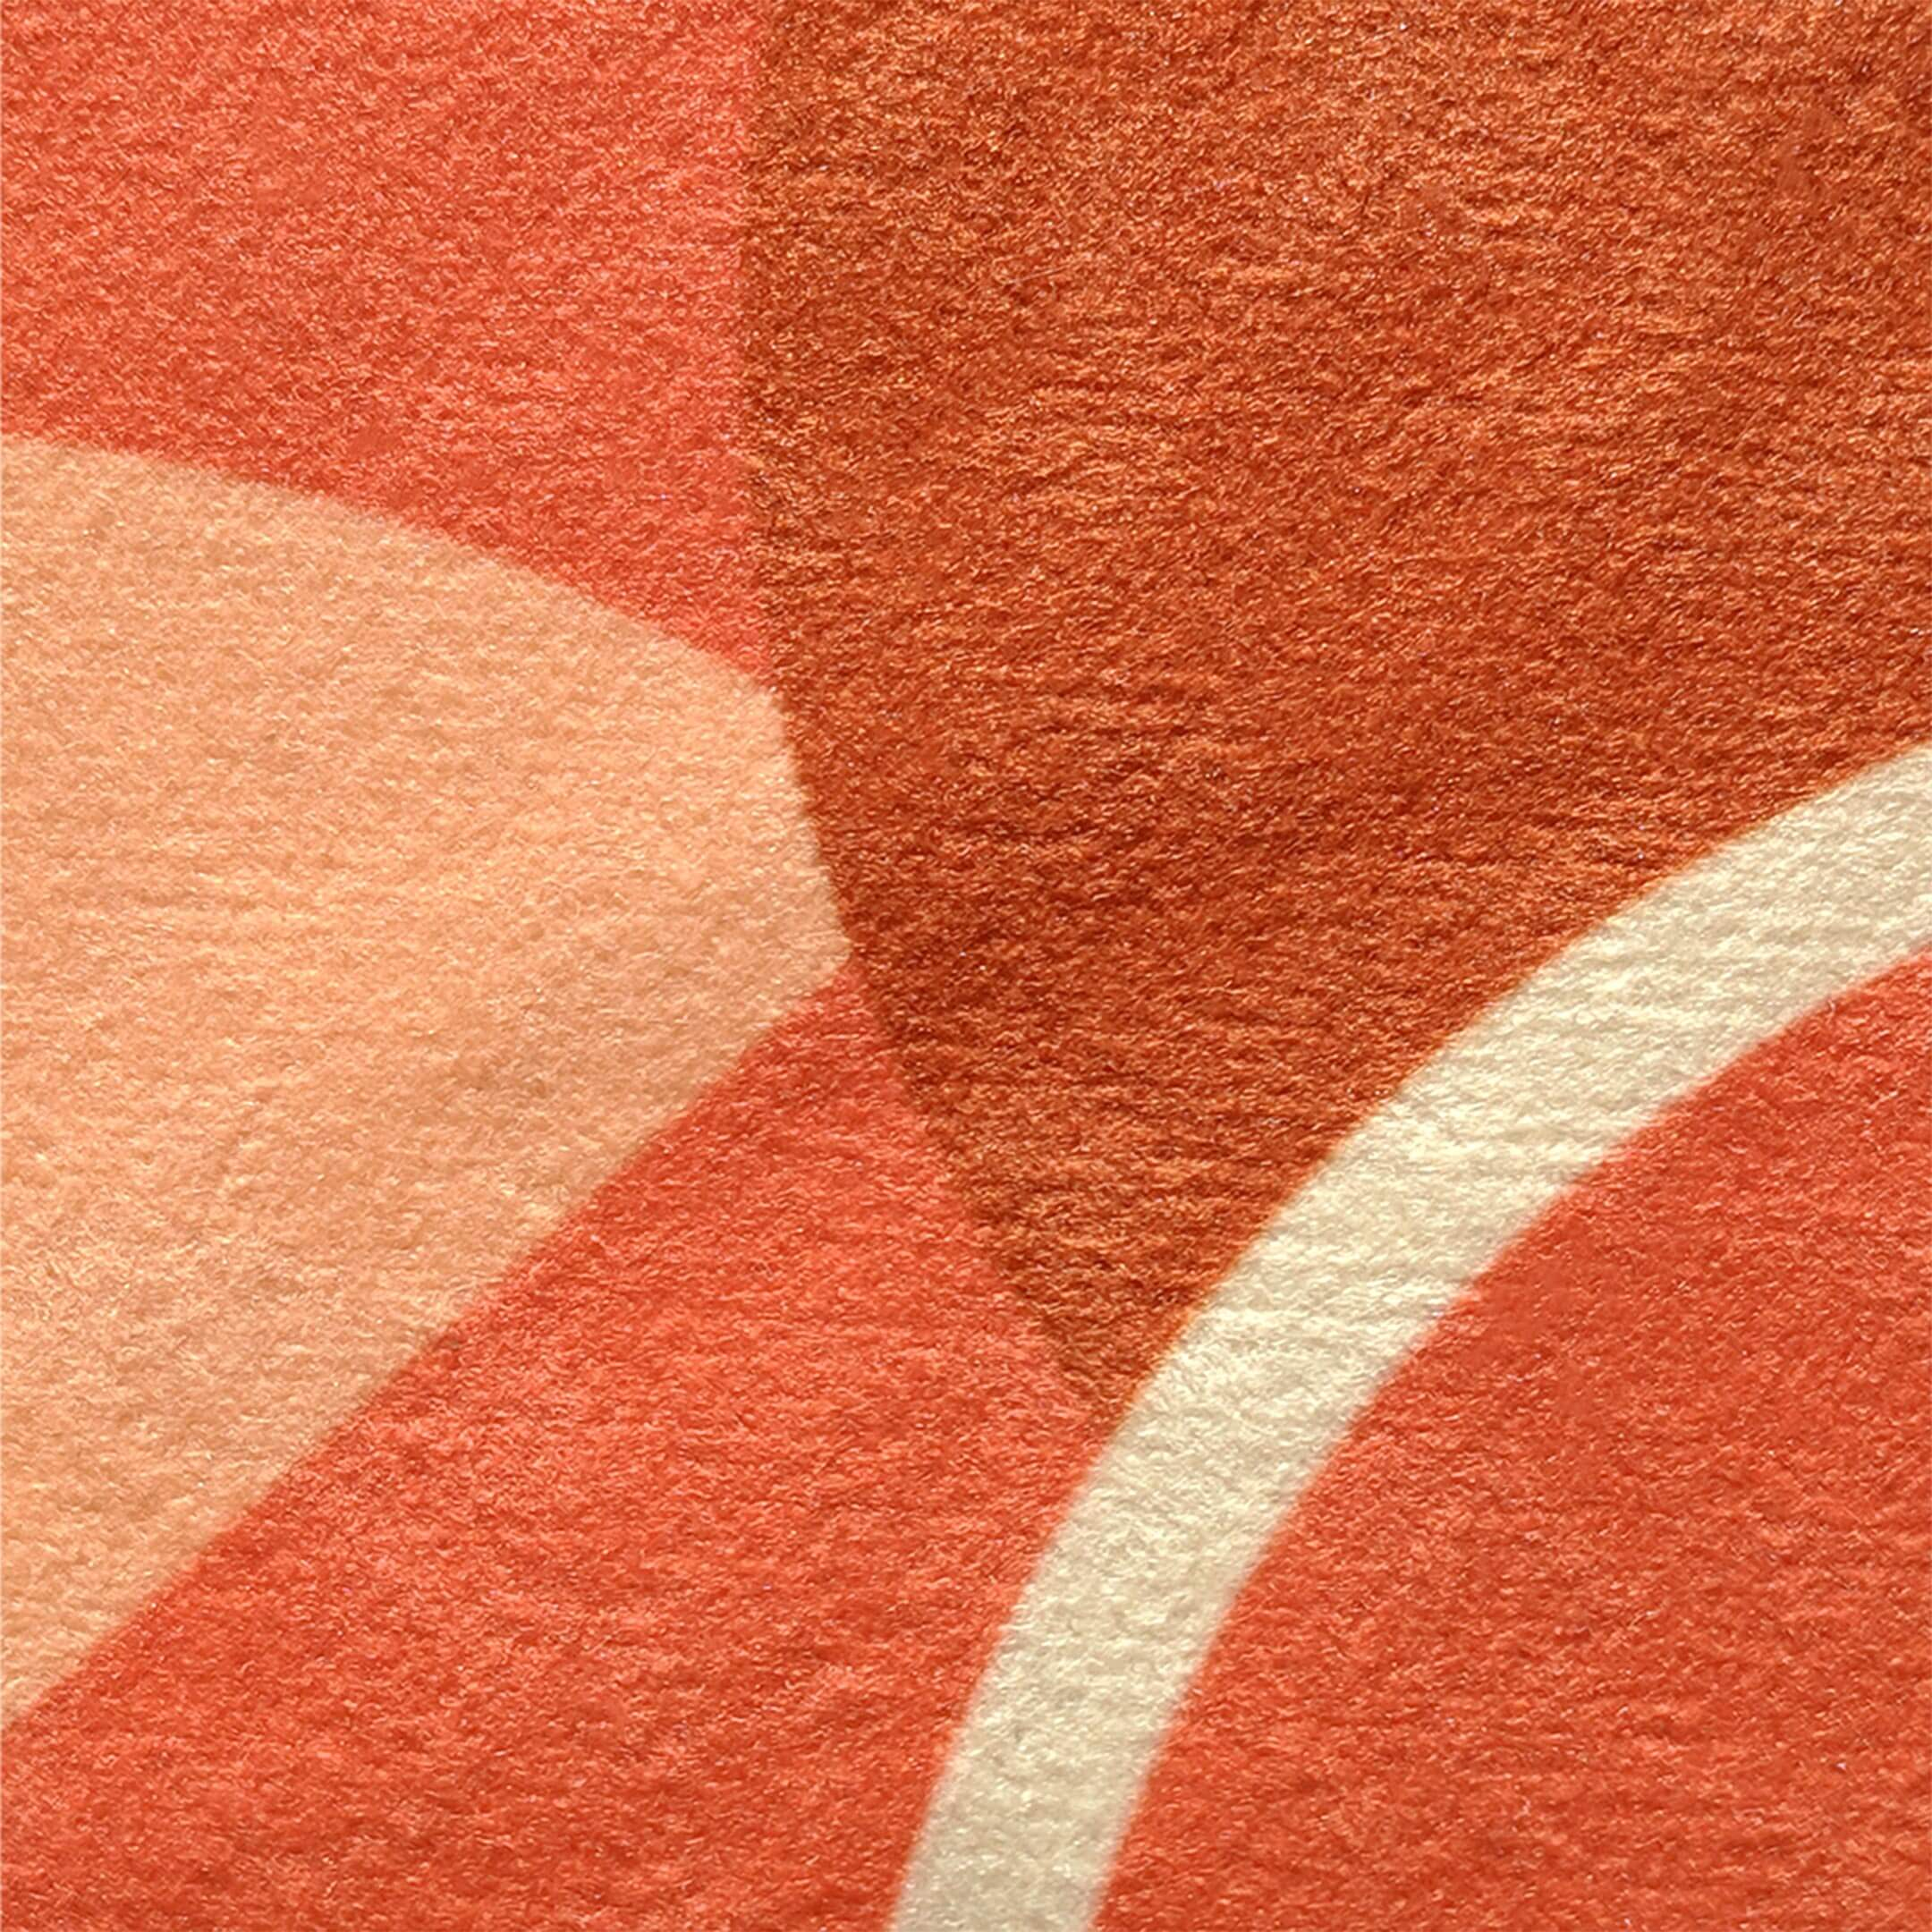 Fabric swatch for orange faux suede throw pillow